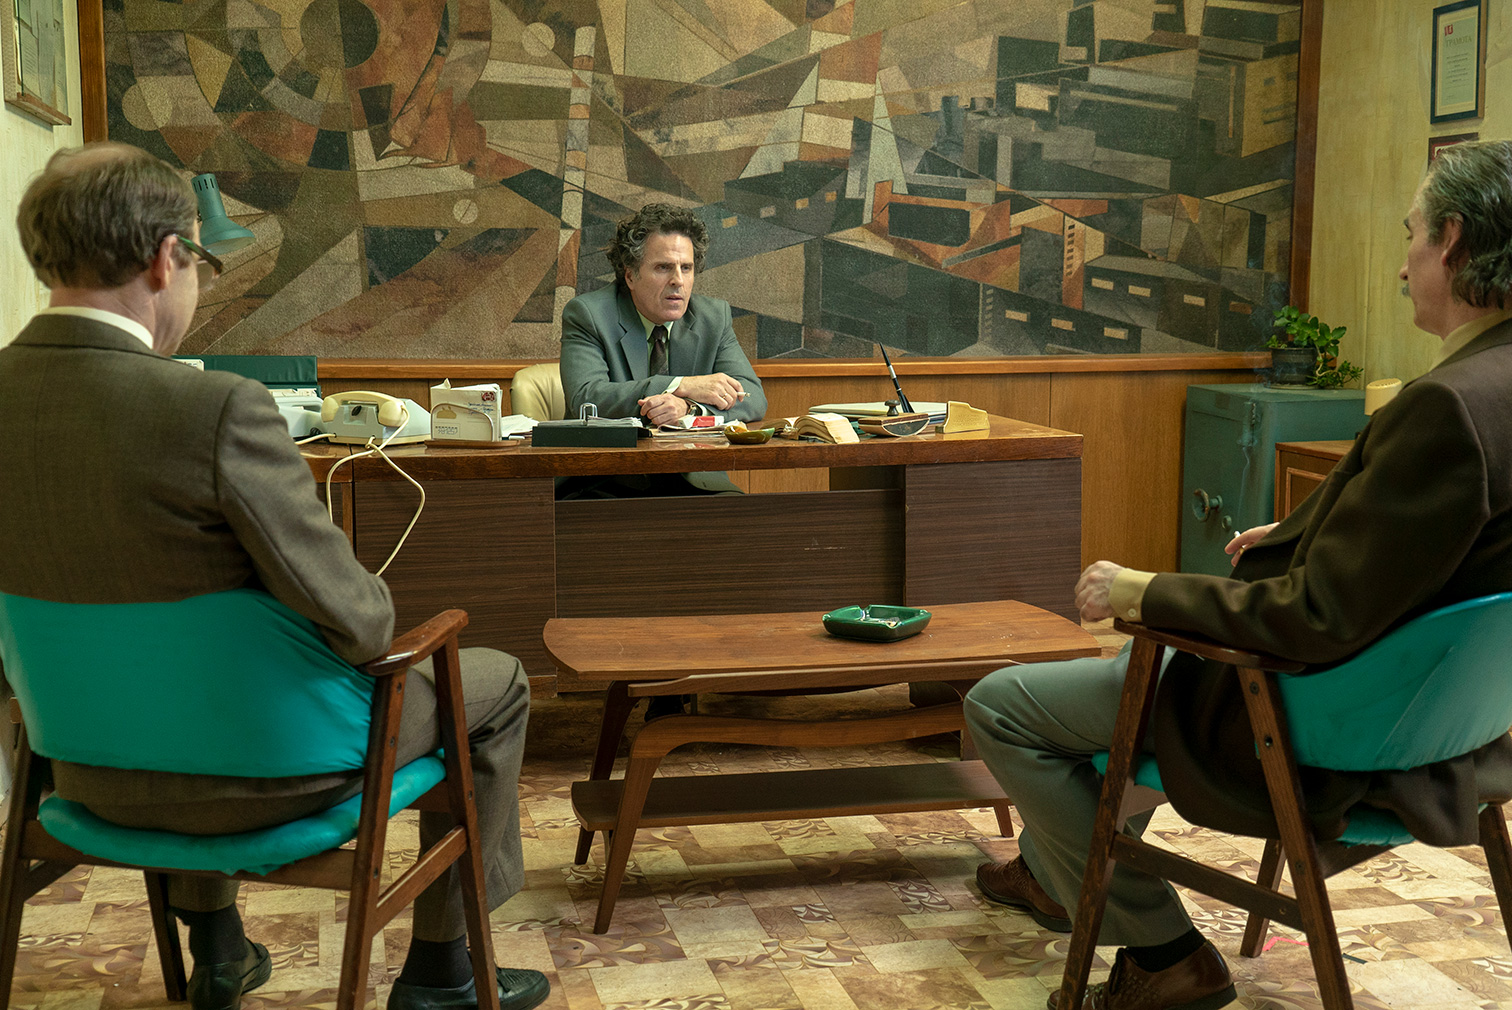 Chernobyl's interior sets evoke the 1980s with myriad clashing patterns and somber tones